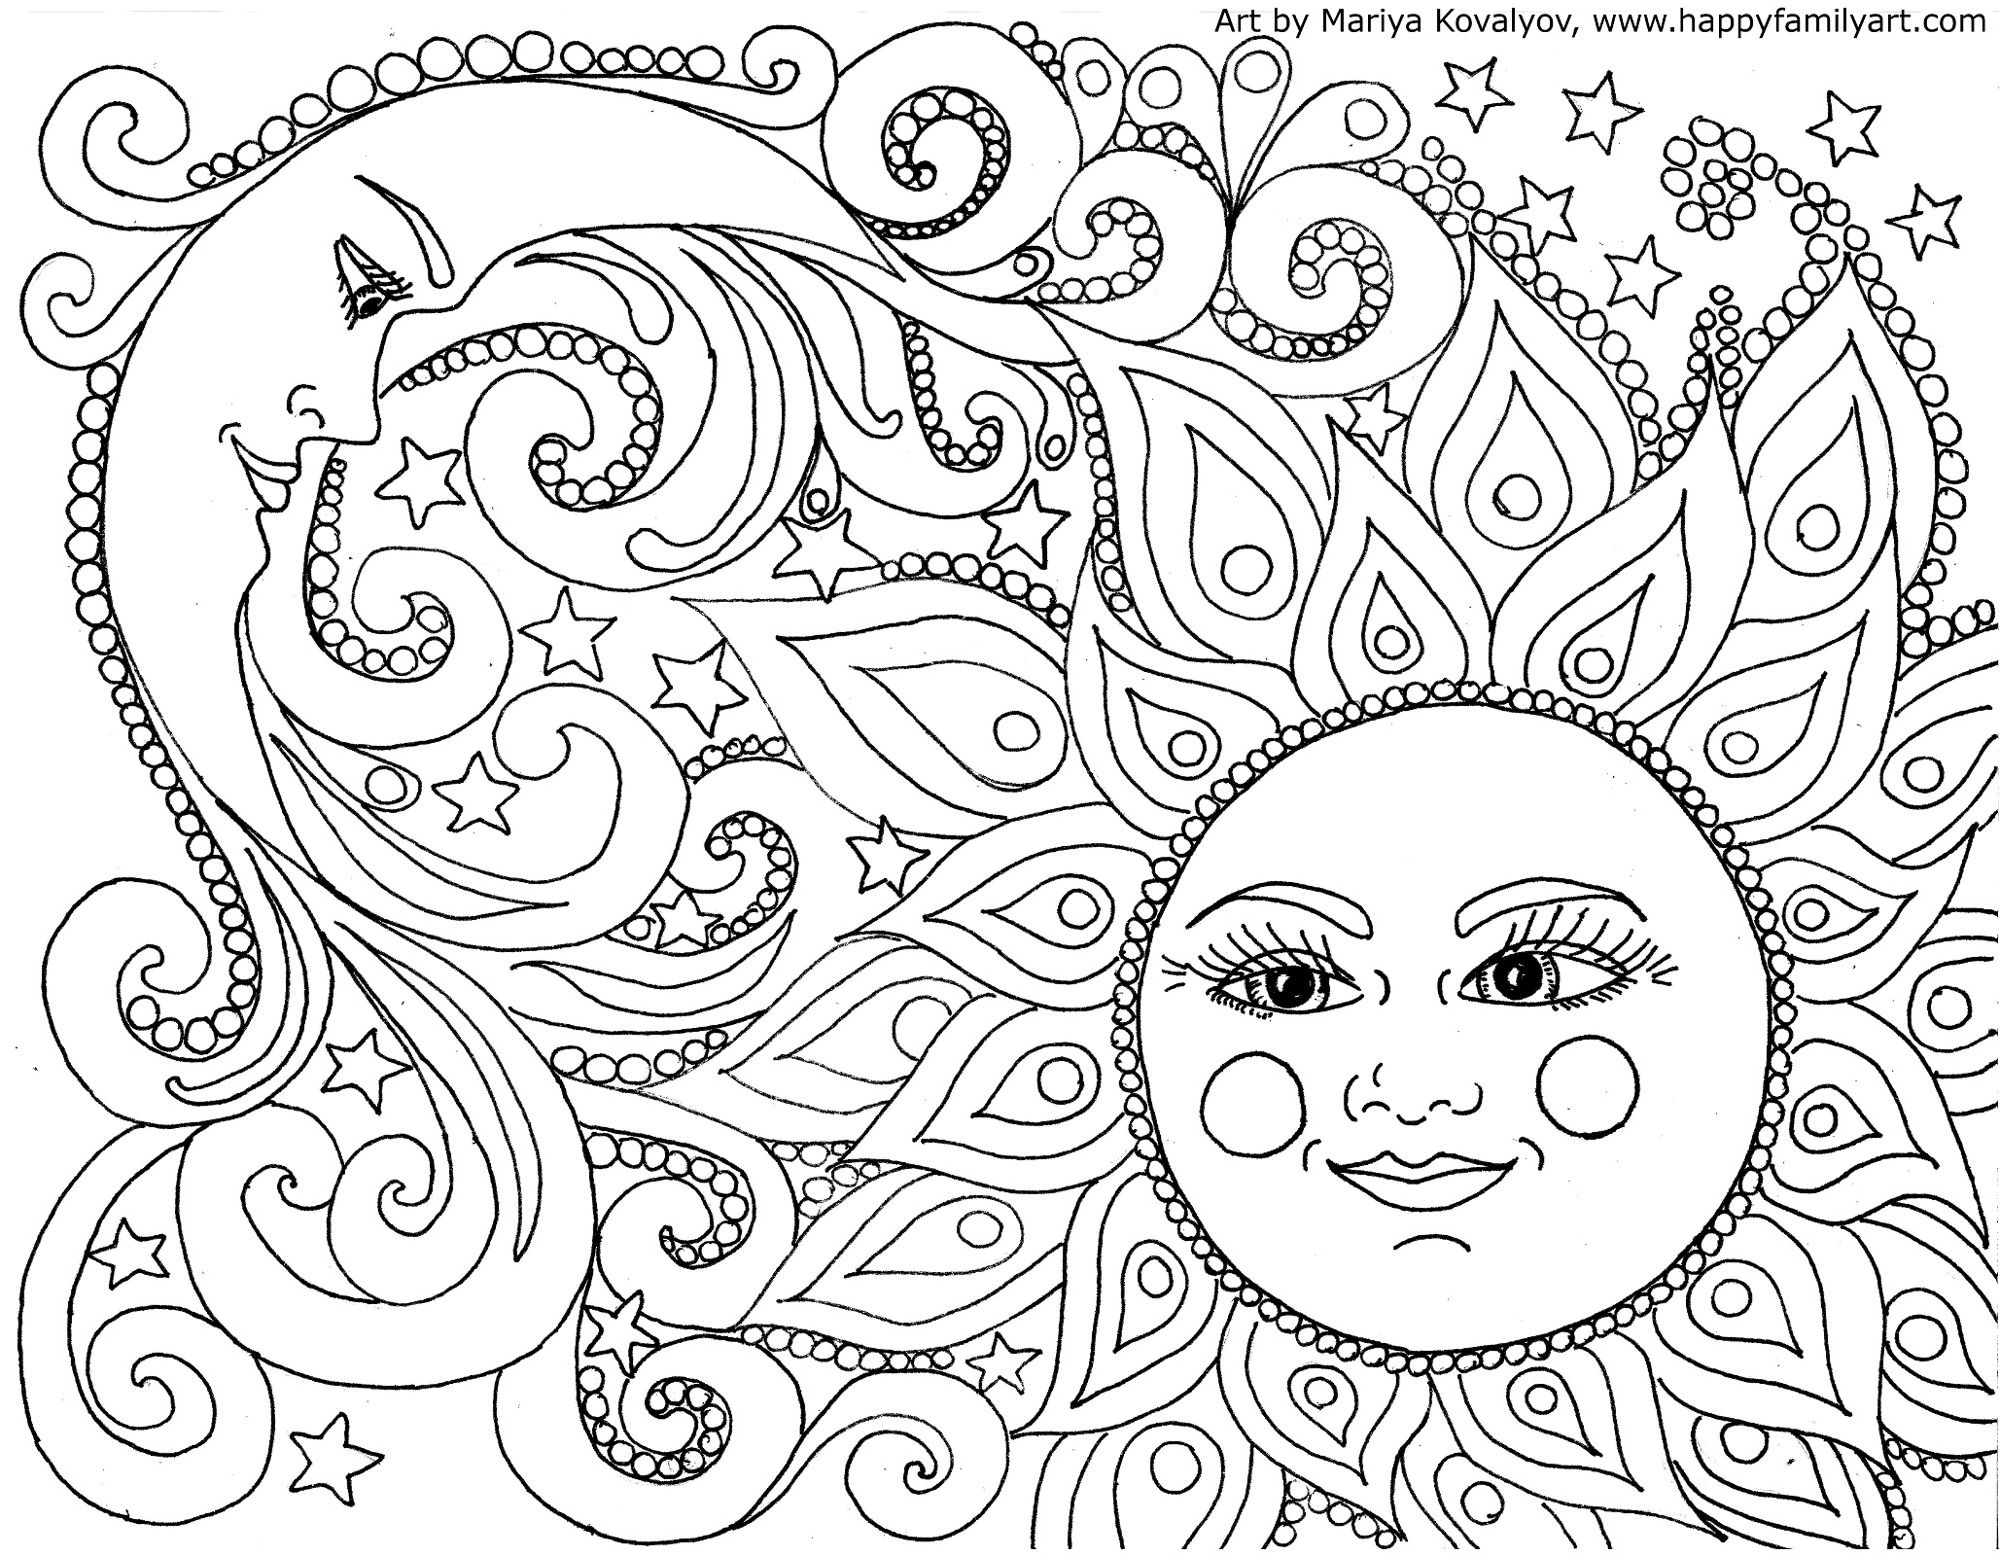 Free colouring pages for 10 year olds - Best 25 Adult Coloring Pages Ideas On Pinterest Diy Coloring Coloring Sheets For 9 Year Olds Coloring Pages Of Anchors For 10 Year Olds